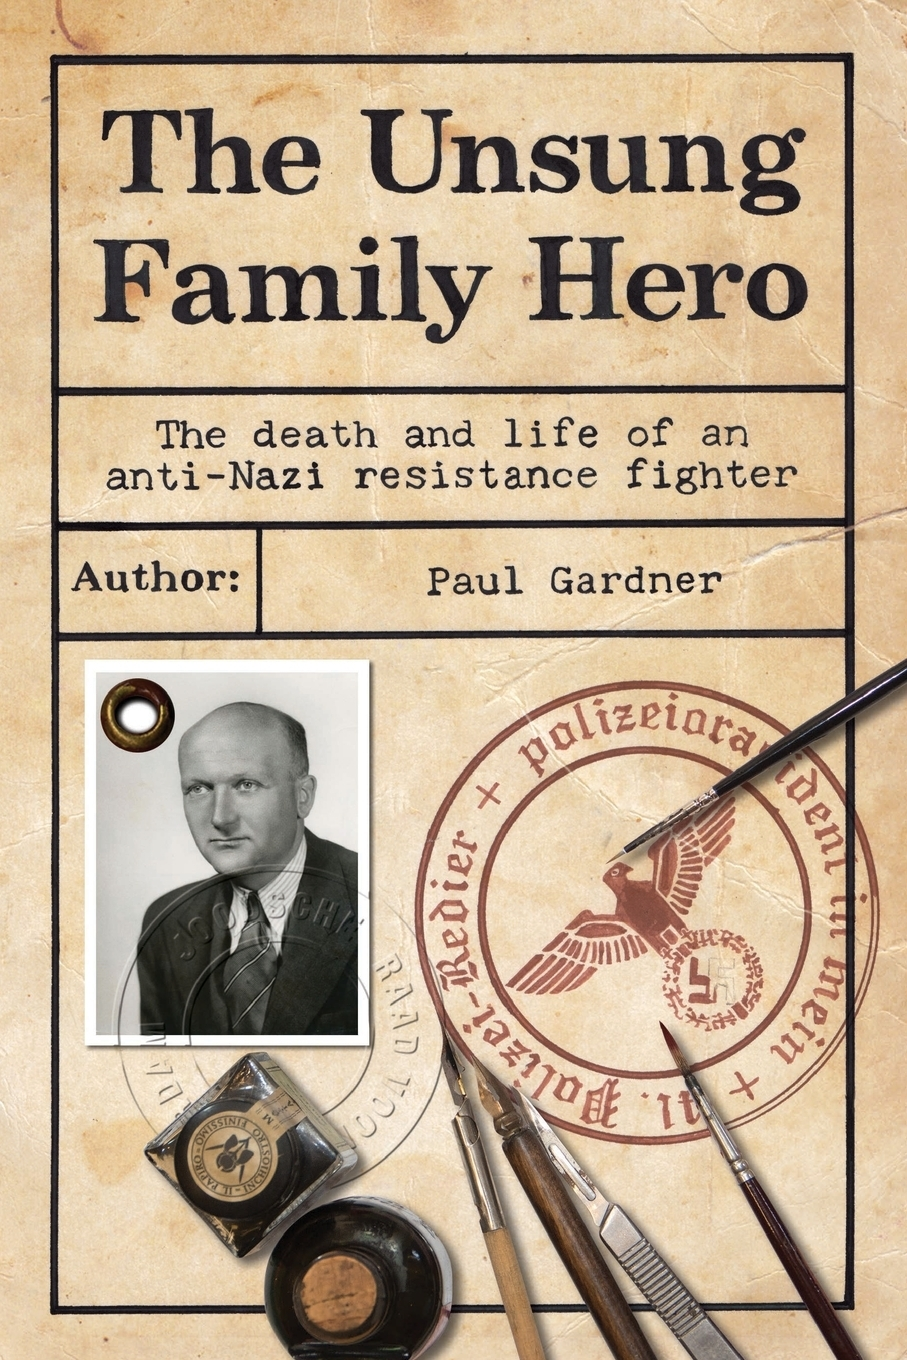 Paul Gardner. The Unsung Family Hero. The Death and Life of an Anti-Nazi Resistance Fighter